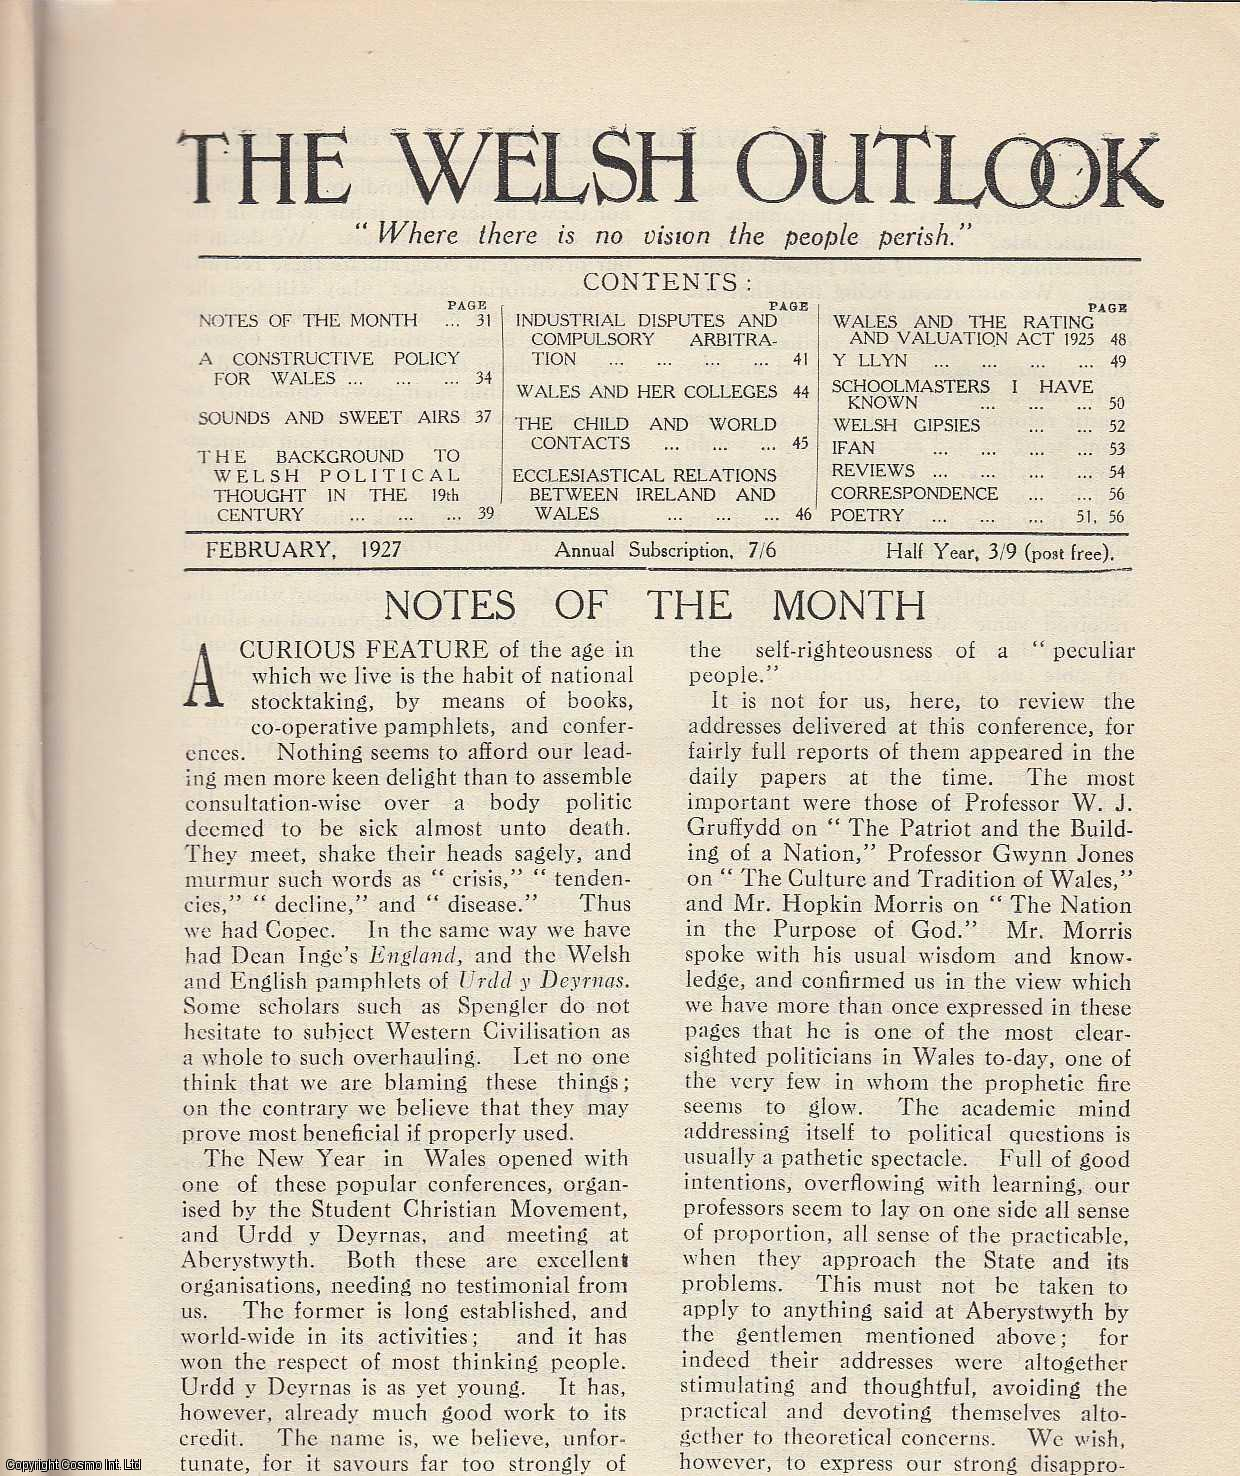 The Welsh Outlook. A Monthly Journal of National Social Progress. February, 1927. Contains; A Constructive Policy for Wales by T.P. Ellis; Sounds and Sweet Airs by Lynn Doyle; The Background to Welsh Political Thought in The 19th Century by T. Evans; Industrial Disputes and Compulsory Arbitration by D. Henry Rees; Wales and her Colleges by J.M.J.; The Child and World Contacts by rev. Watcyn M. Price; Ecclesiastical Relations between Ireland and Wales: In The Eleventh and Twelfth Centuries by Rev. T. Mardy Rees; Wales and The Rating and Valuation Act, 1925 by Rusticus; Y Llyn by Eluned Temple; Schoolmasters I have Known: Mr. William Griffith Howell, Rhondda by Defynnog Treherbert; Welsh Gipsies by R.E. Davies; Ifan by Gwyneth M. Mills., Thomas Jones (Editor)